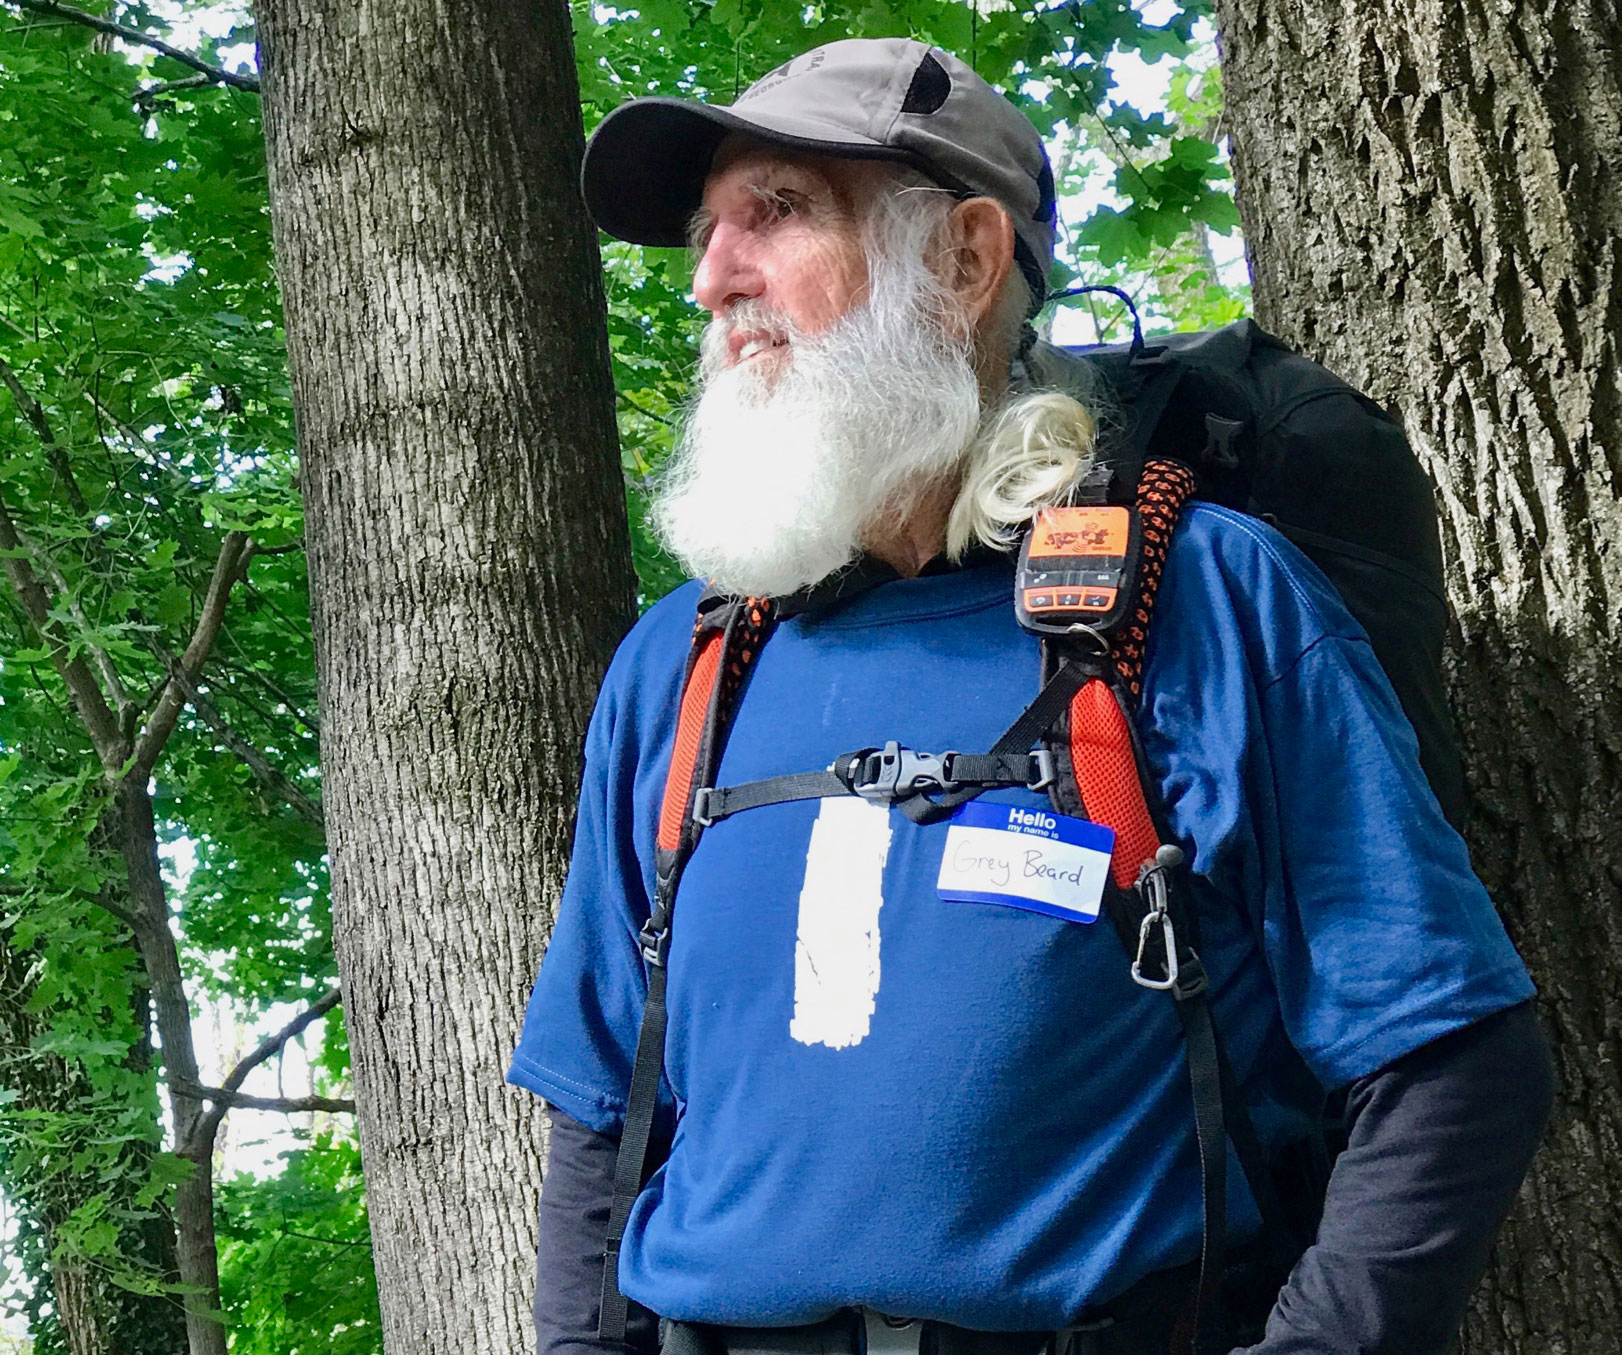 SPOT Devices Go the Length of the Appalachian Trail and Beyond